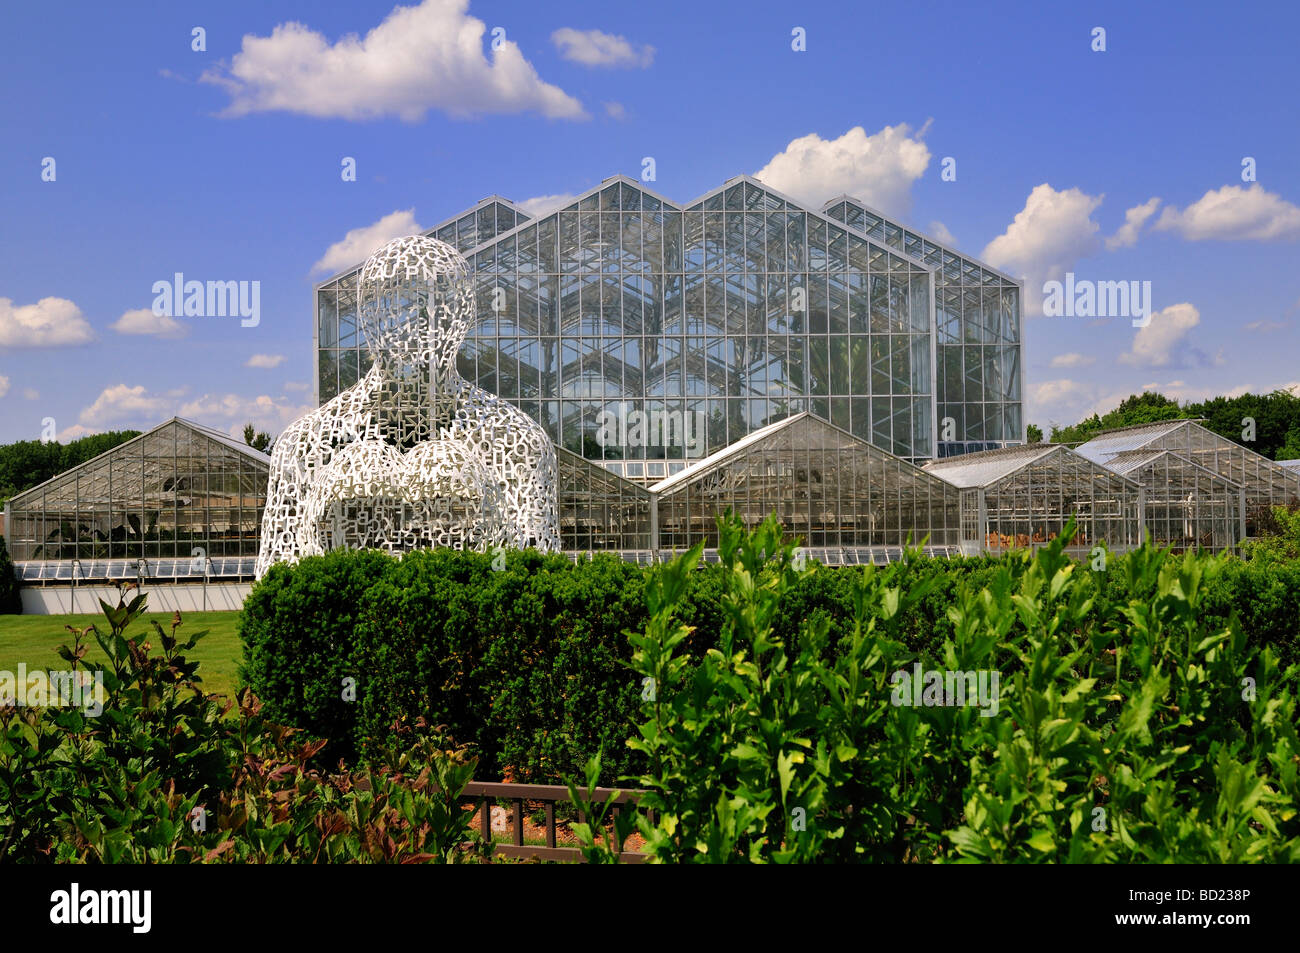 Conservatories at the Frederik Meijer Gardens and Sculpture Park - Stock Image